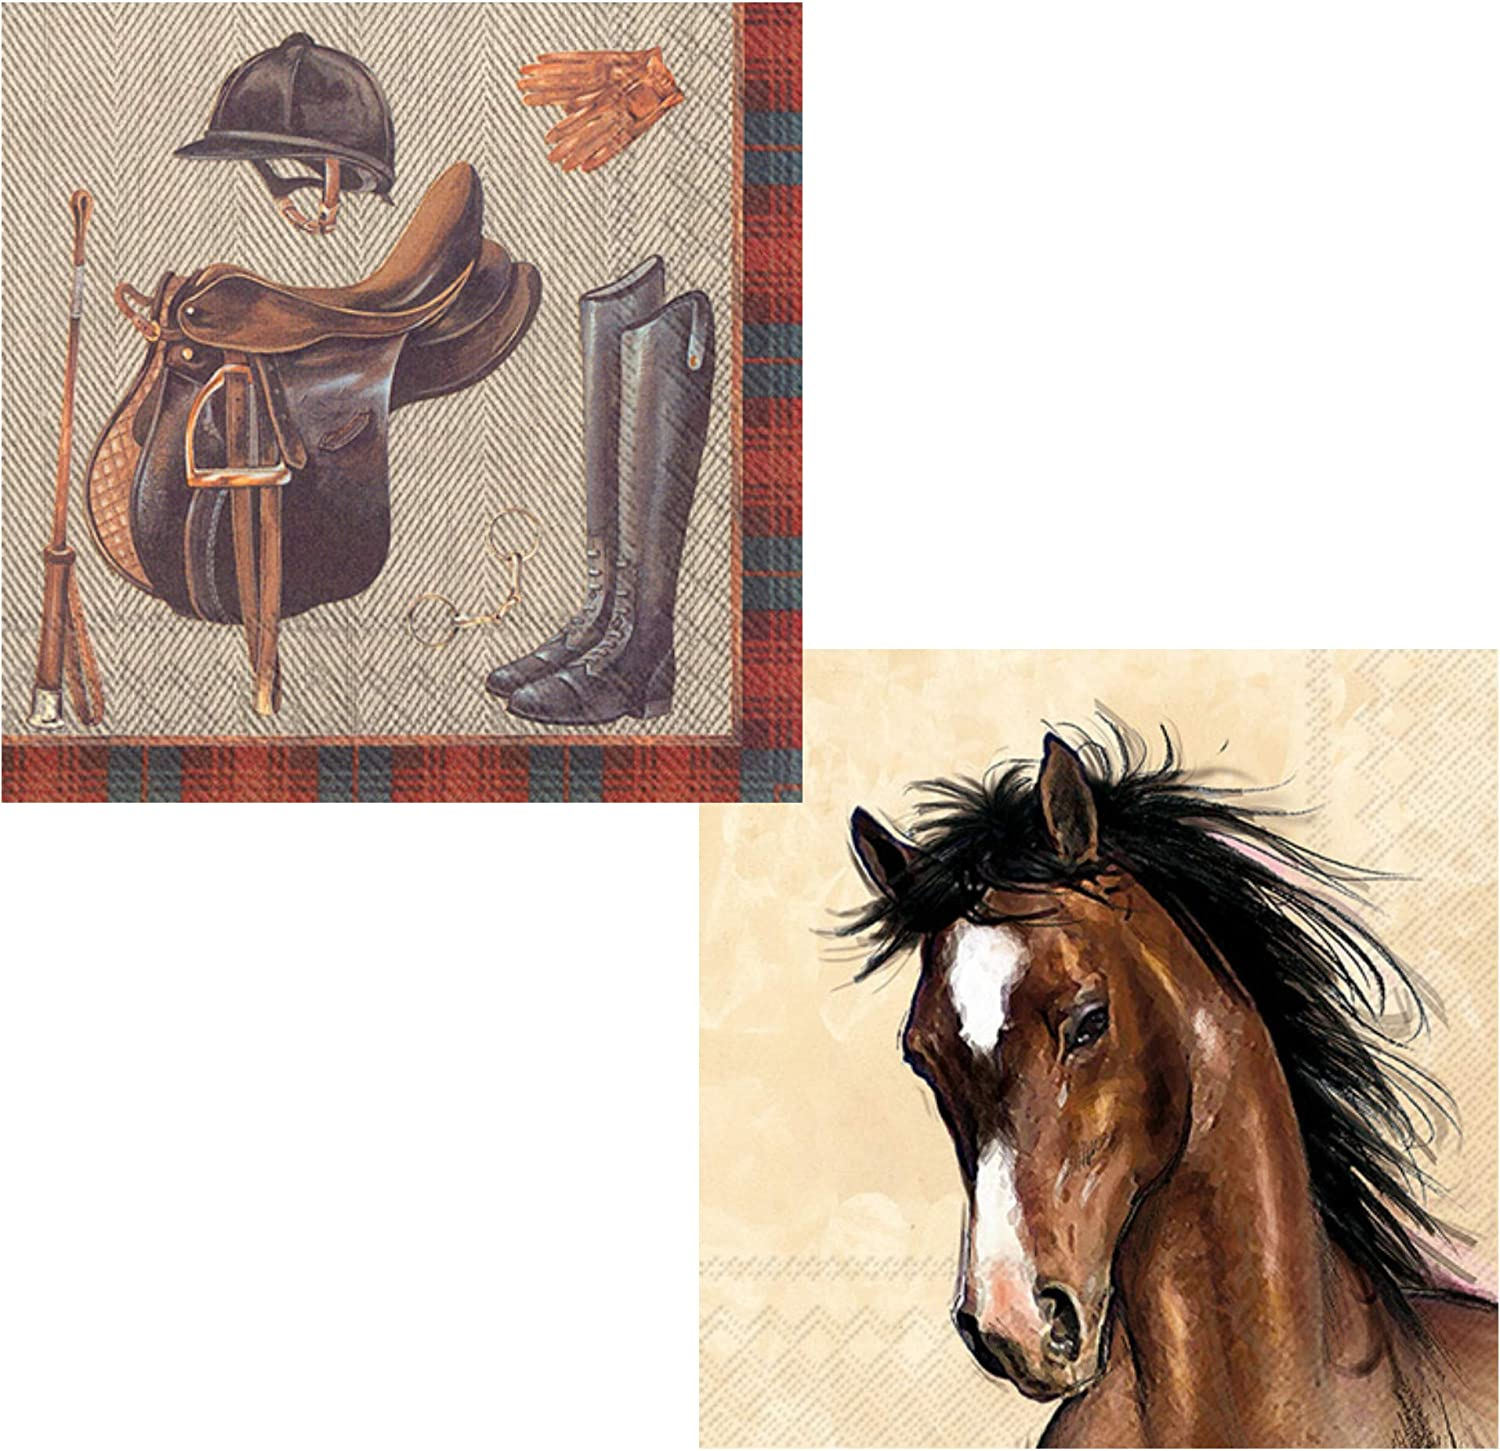 Horse Riding Equestrian Themed Beverage Napkins Variety Pack | Bundle Includes 40 Total Paper Cocktail Napkins | 2 Horse Riding Designs